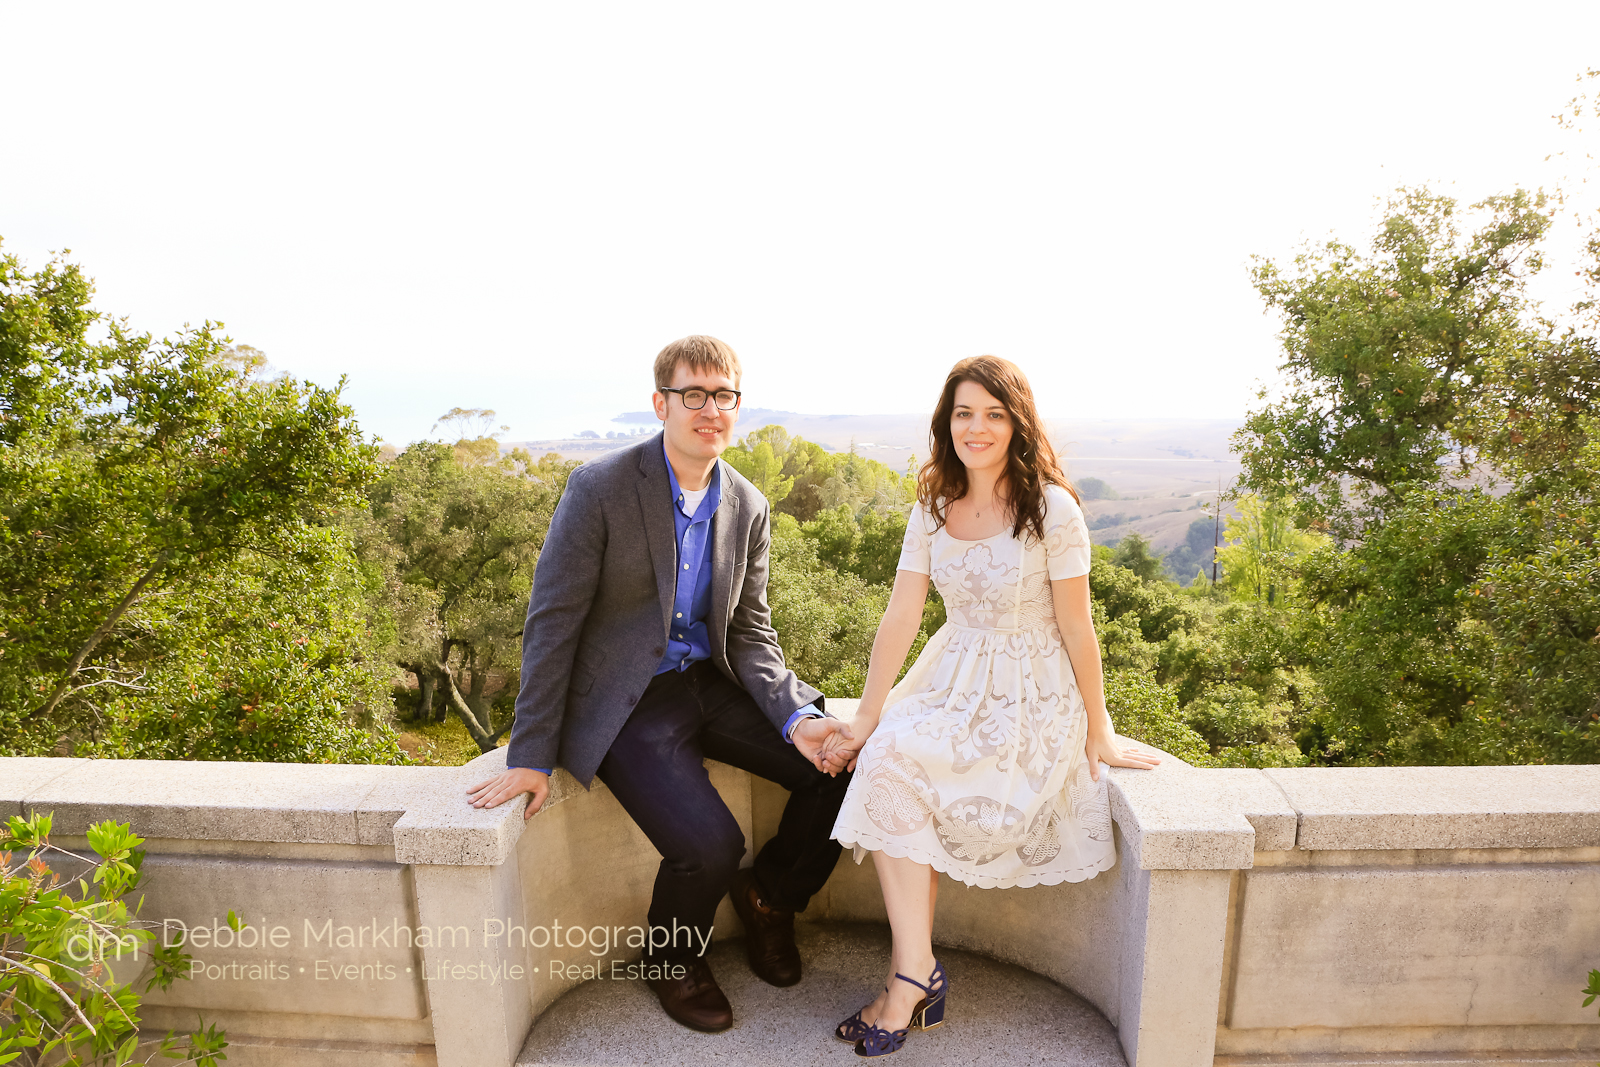 Debbie Markham Photography+Hearst Castle+Engagement+Photographer+Destination Wedding+Central Coast+San Simeon+Cambria+California-3175